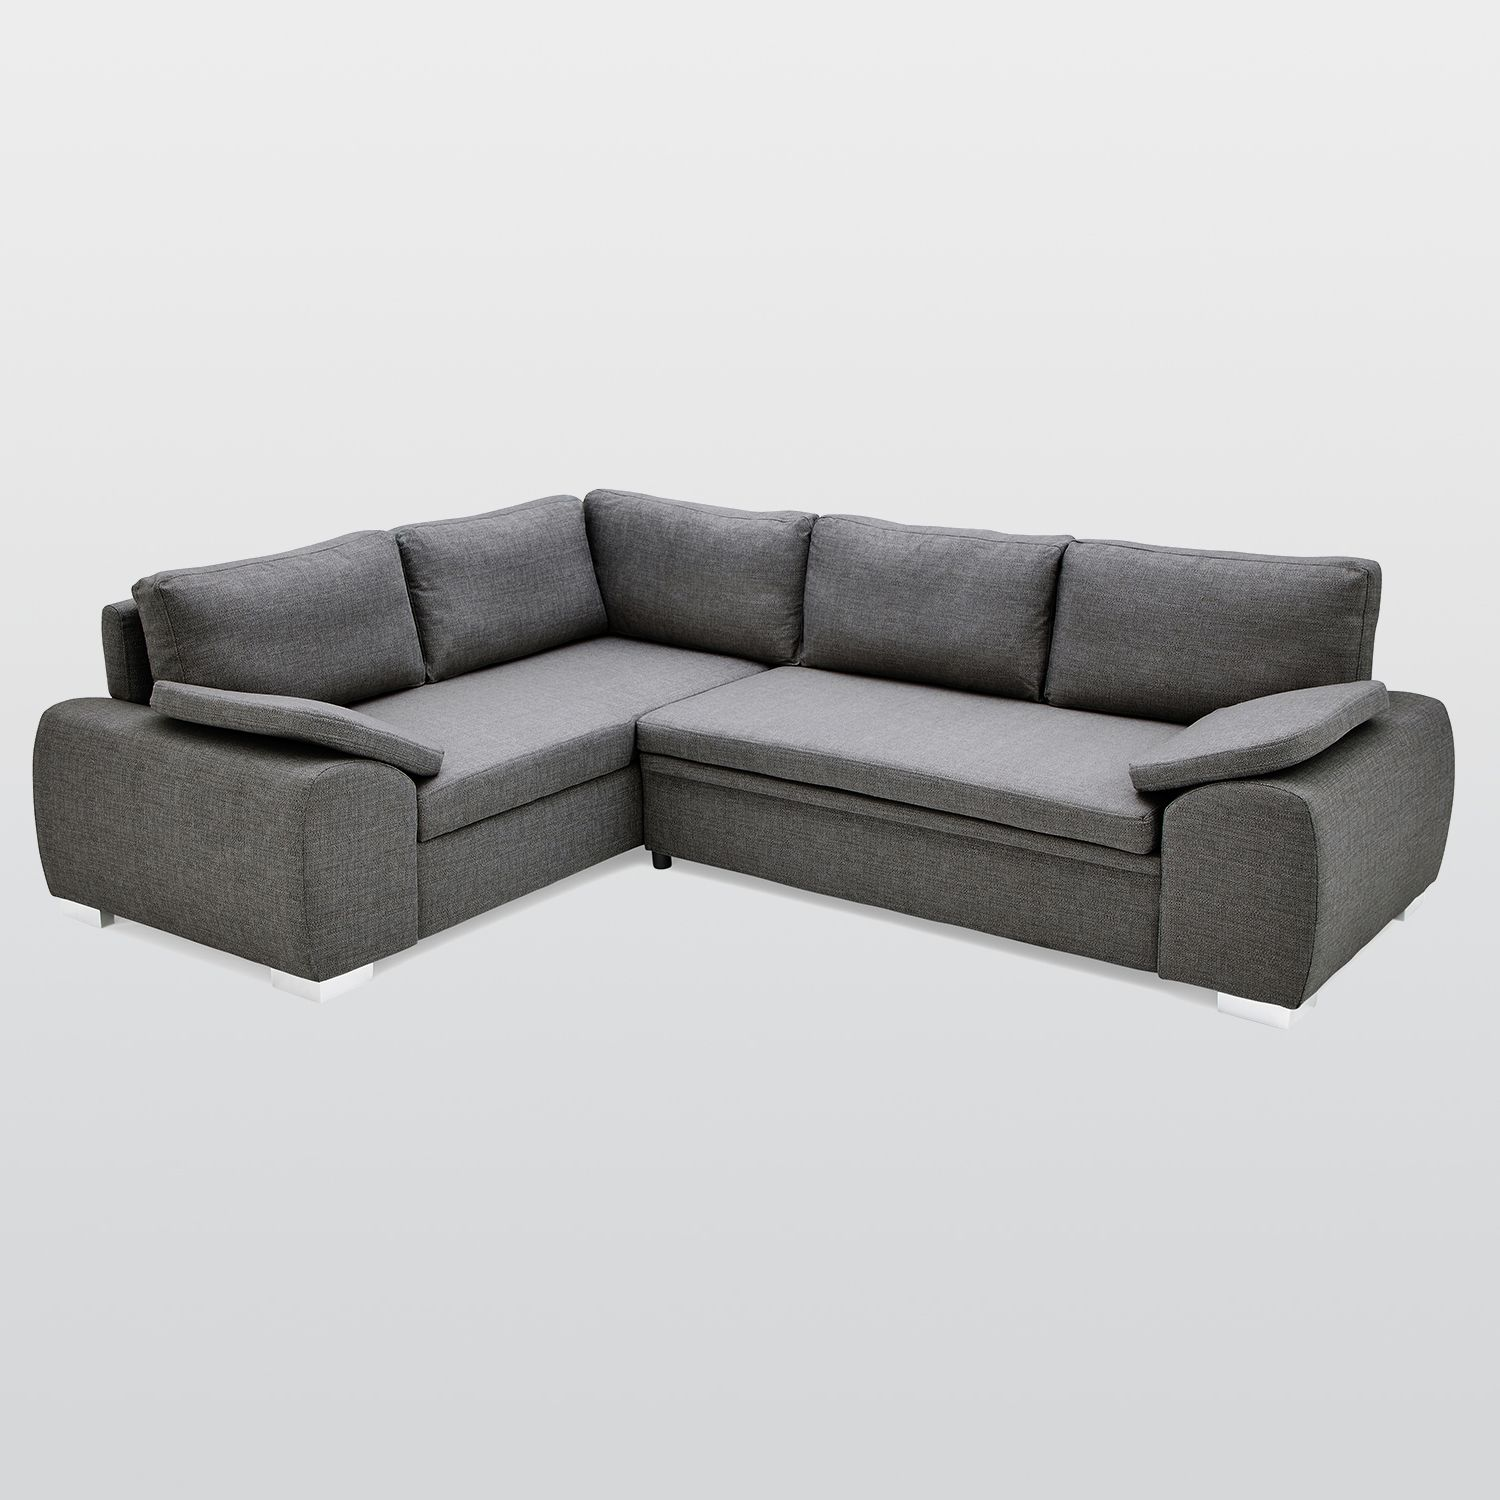 Enzo Corner Sofa Bed With Storage Fabric Next Day Delivery Enzo Corner Sofa Bed With Storage Corner Sofa Bed With Storage Upholstered Sofa Corner Sofa Bed